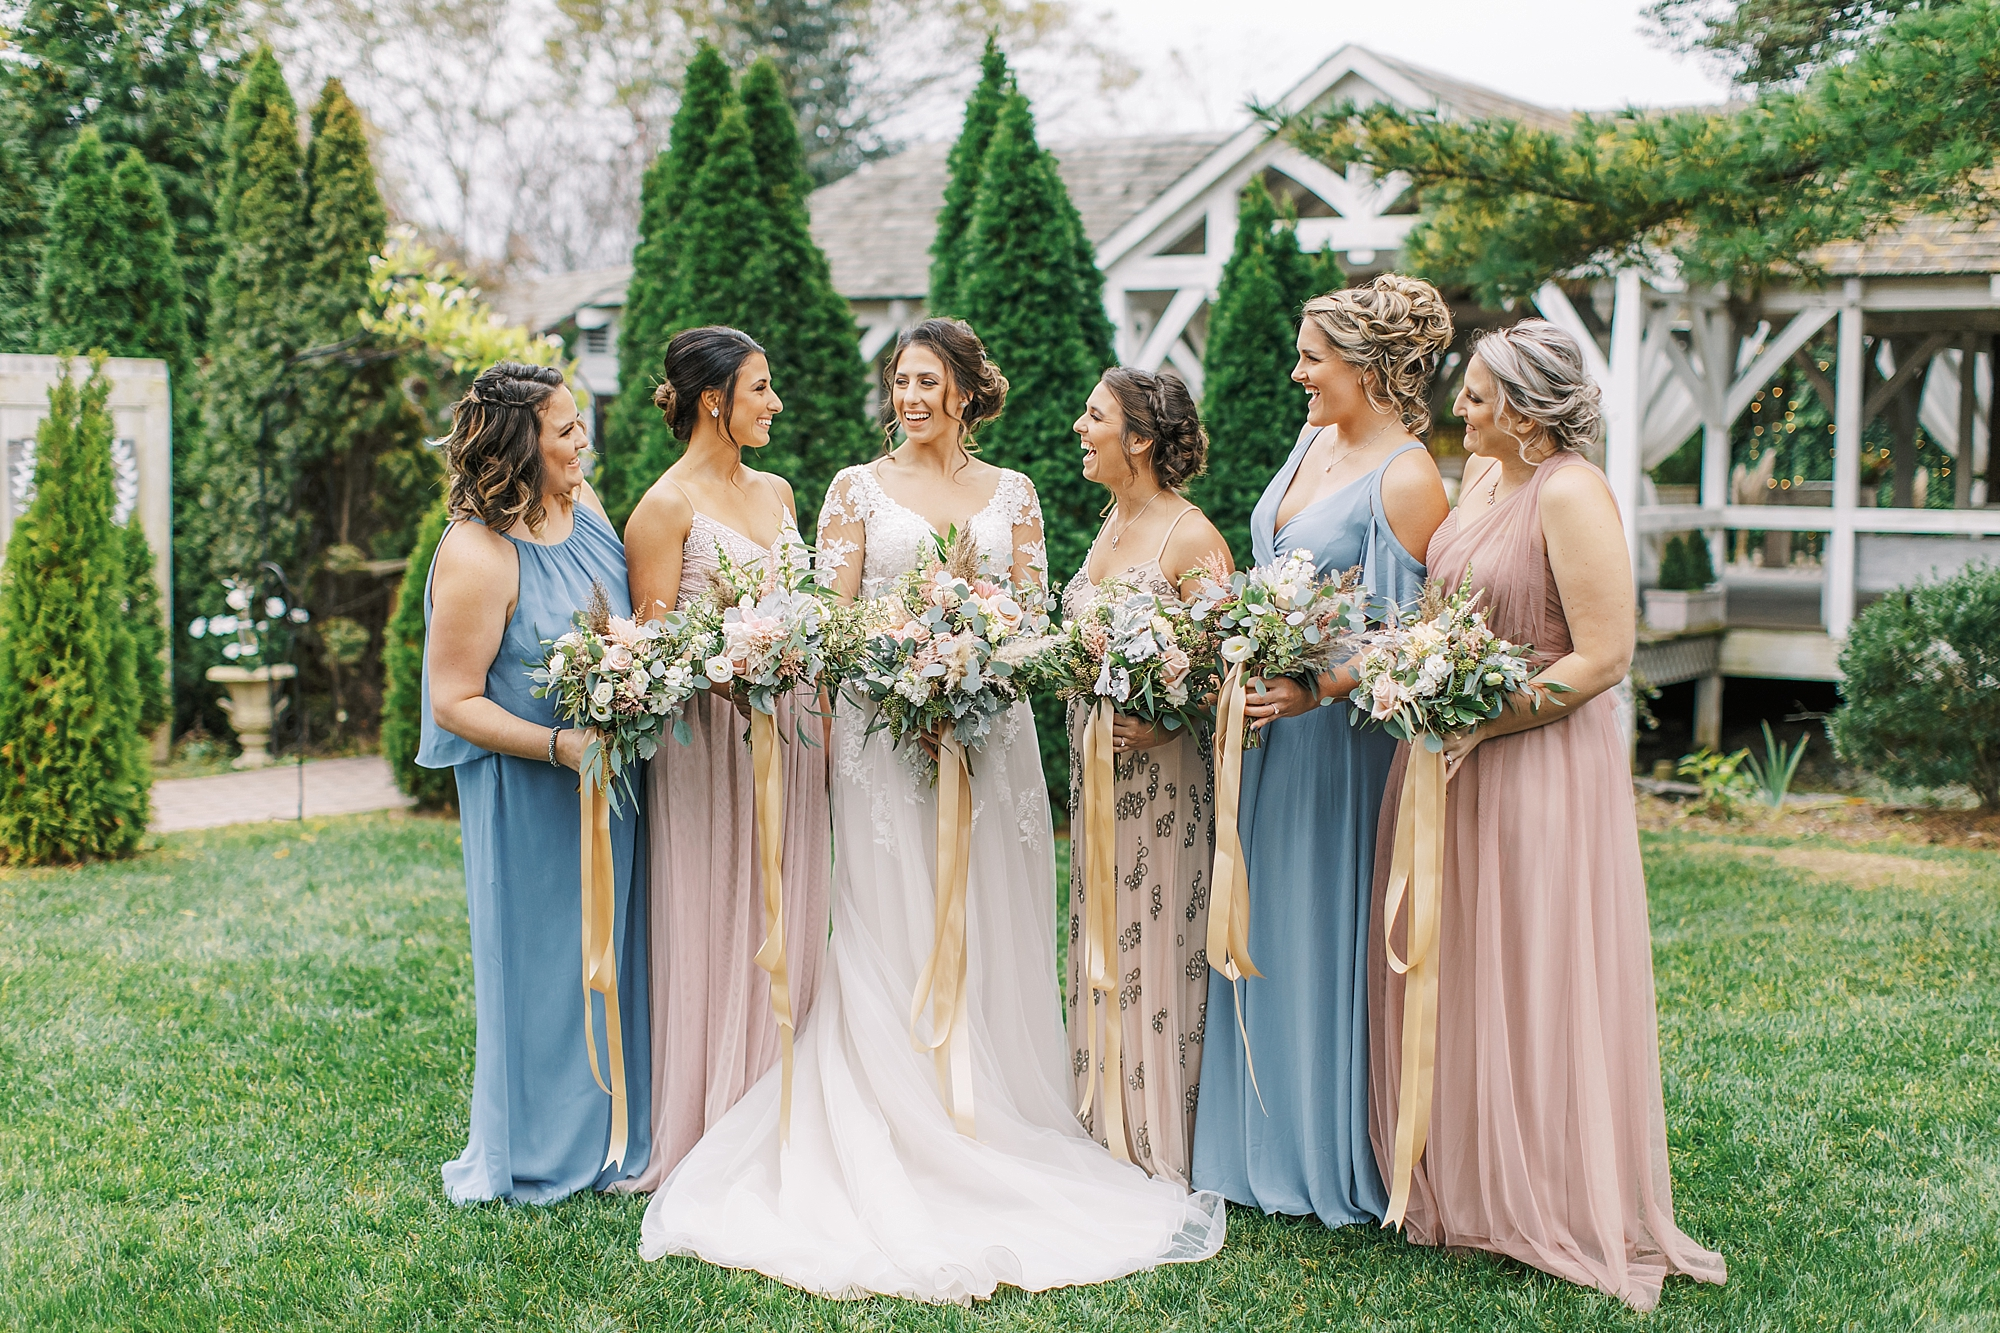 Sweet Garden Wedding Photography Abbie Holmes Estate in Cape May NJ by Magdalena Studios 0027